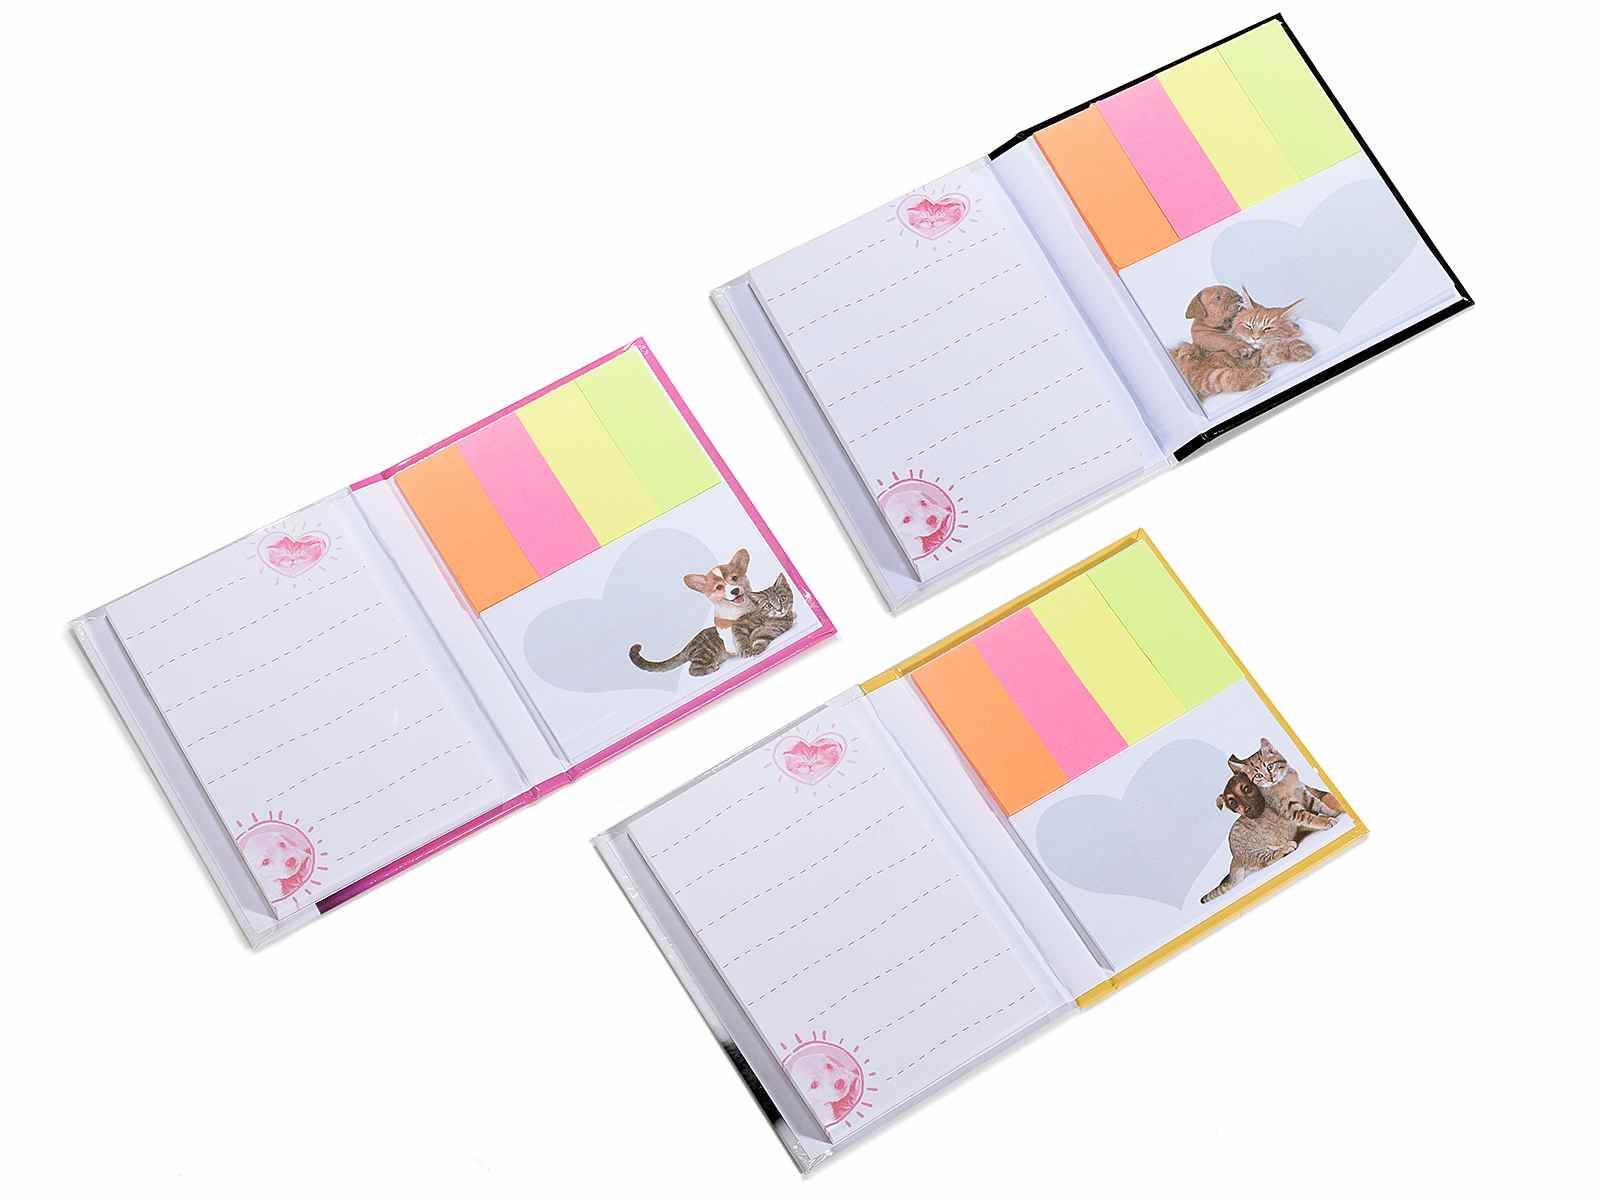 Set Memo With Self Adhesive Ticket Block Notes Rigid Cover